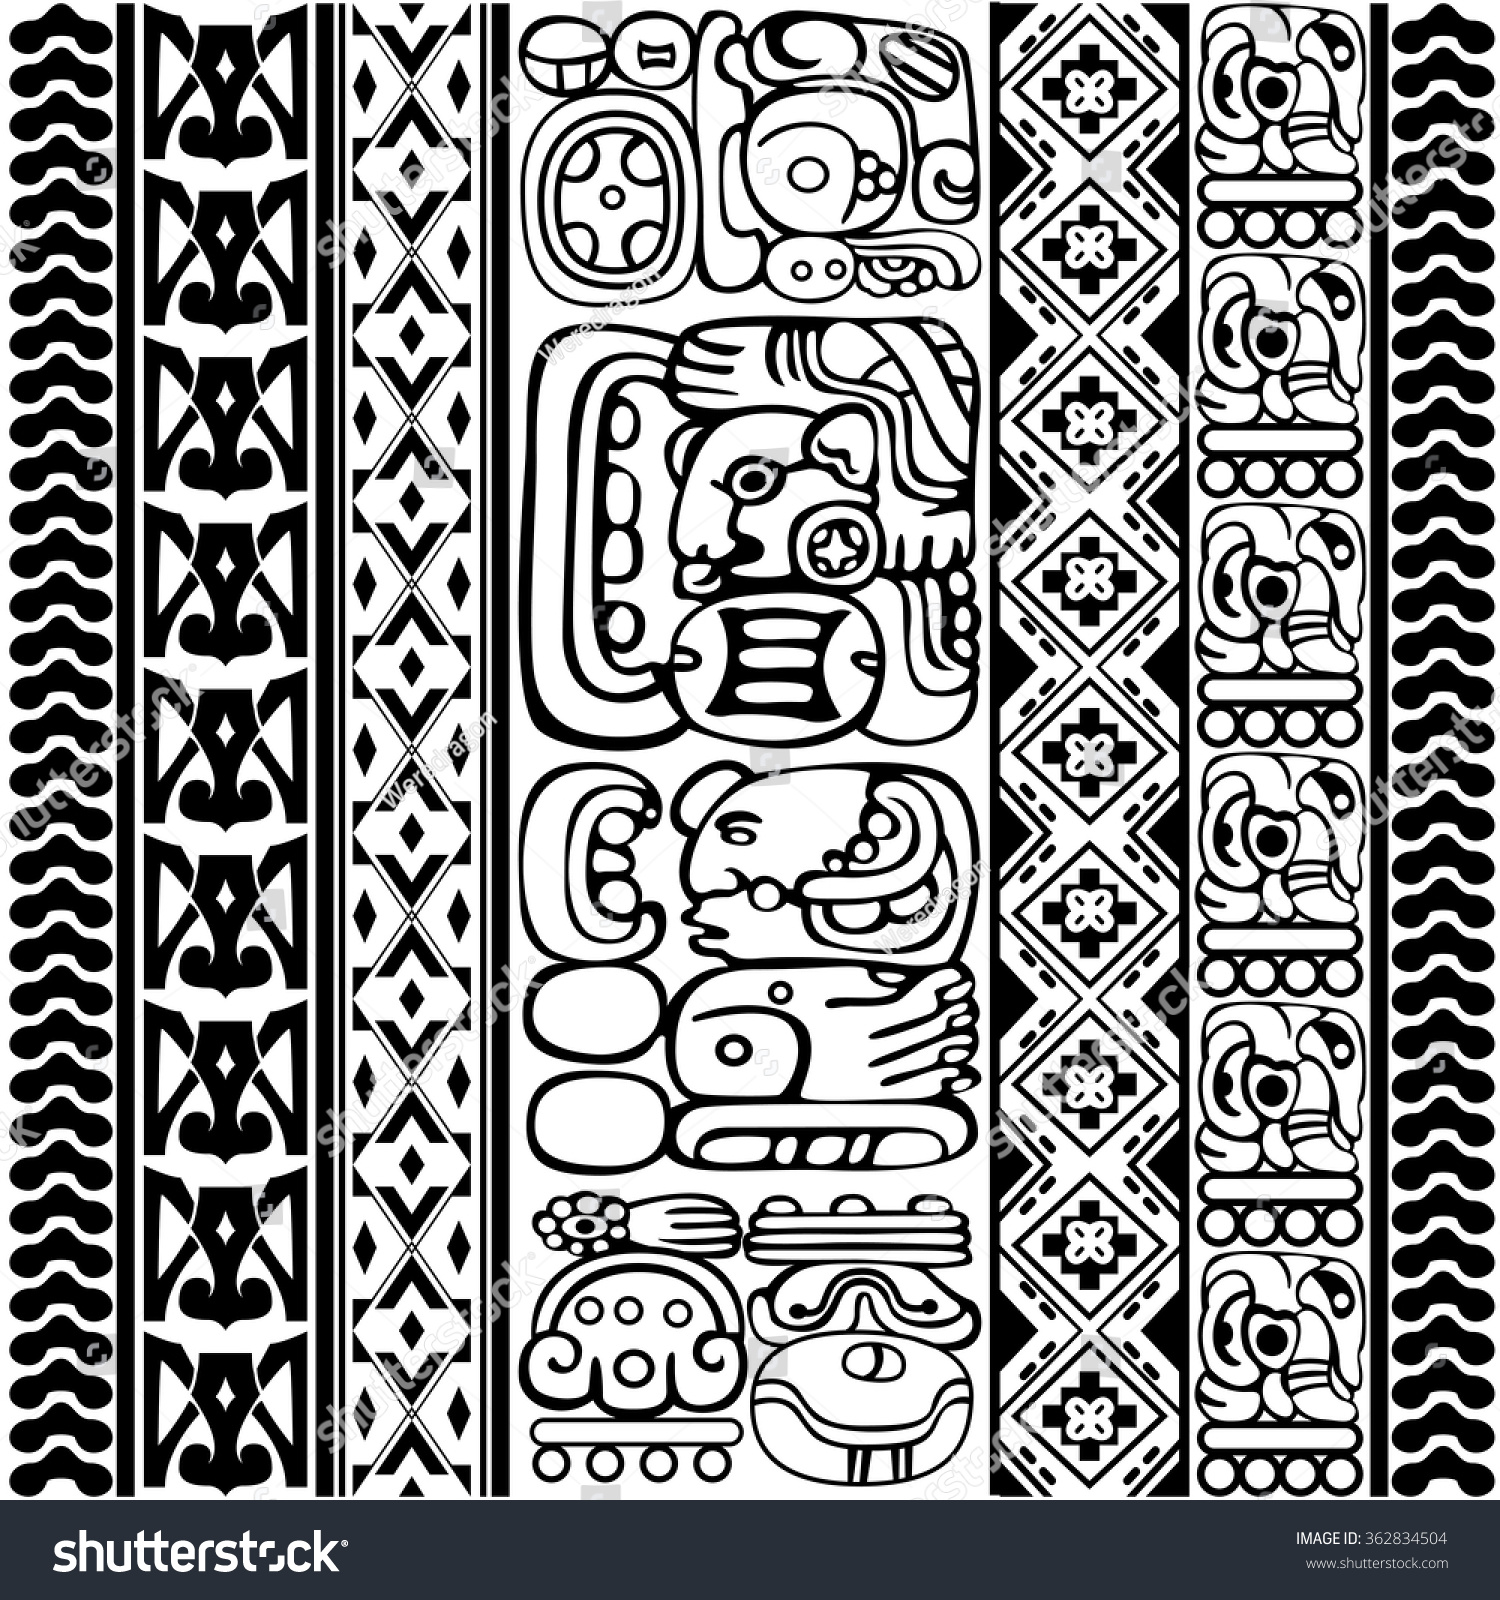 aztec writing The following information is taken from the ancient scripts website aztec writing had three primary functions, namely to mark calendrical dates, to record accounting mathematical calculations, and to write names of people and places.